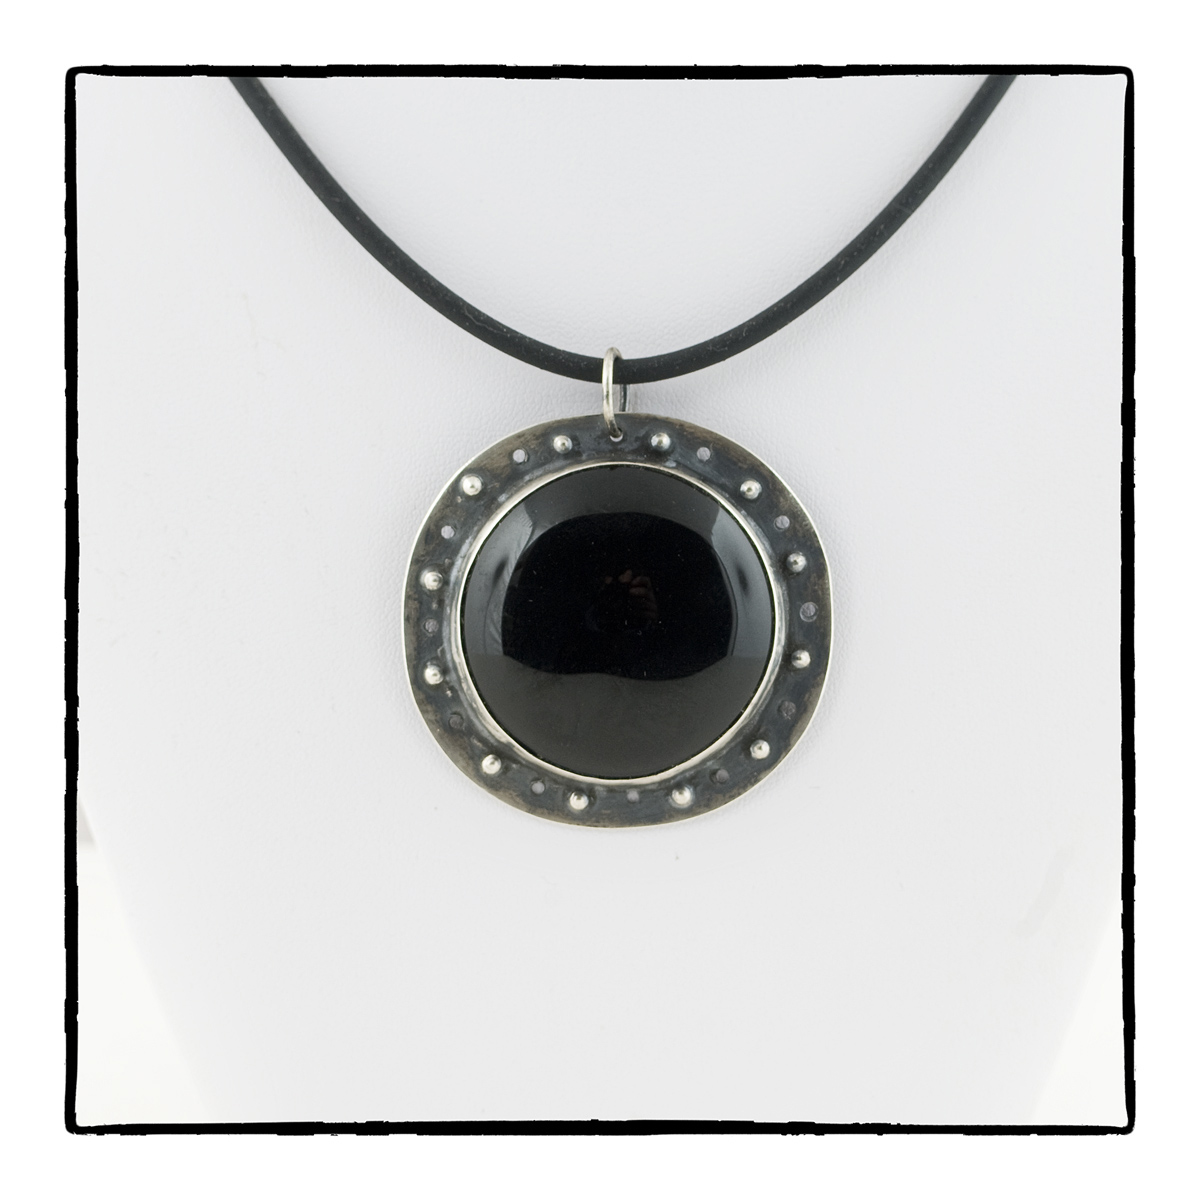 Black onyx and sterling silver pendant. Scarlet Bennett